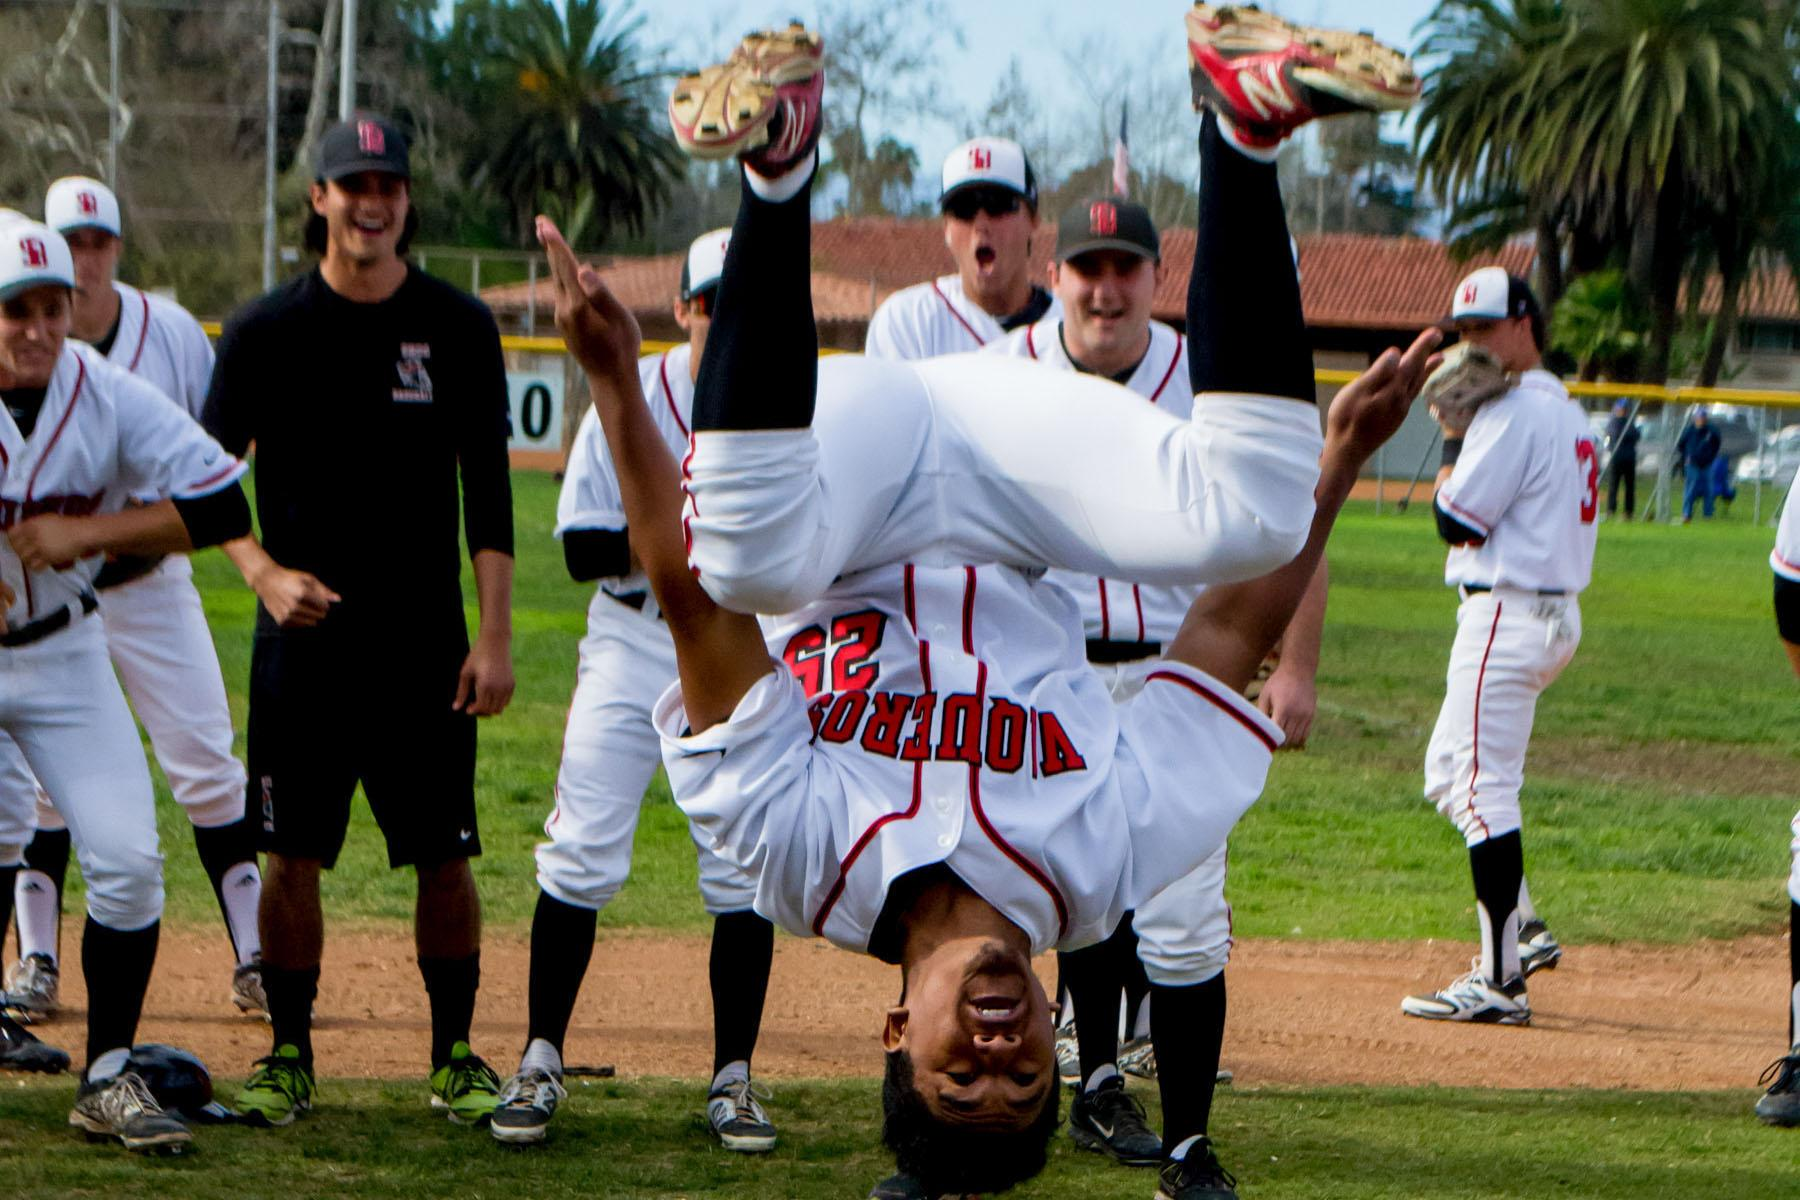 Vaquero's outfielder Cameron Jones (No. 25) performs his pre-game ritual of doing backflips to get the team pumped up before the game, Friday, Jan. 29, at Pershing Park in Santa Barbara. City College took the field by storm with a 16-3 victory over competitors Napa Valley in their first home opener of the season.